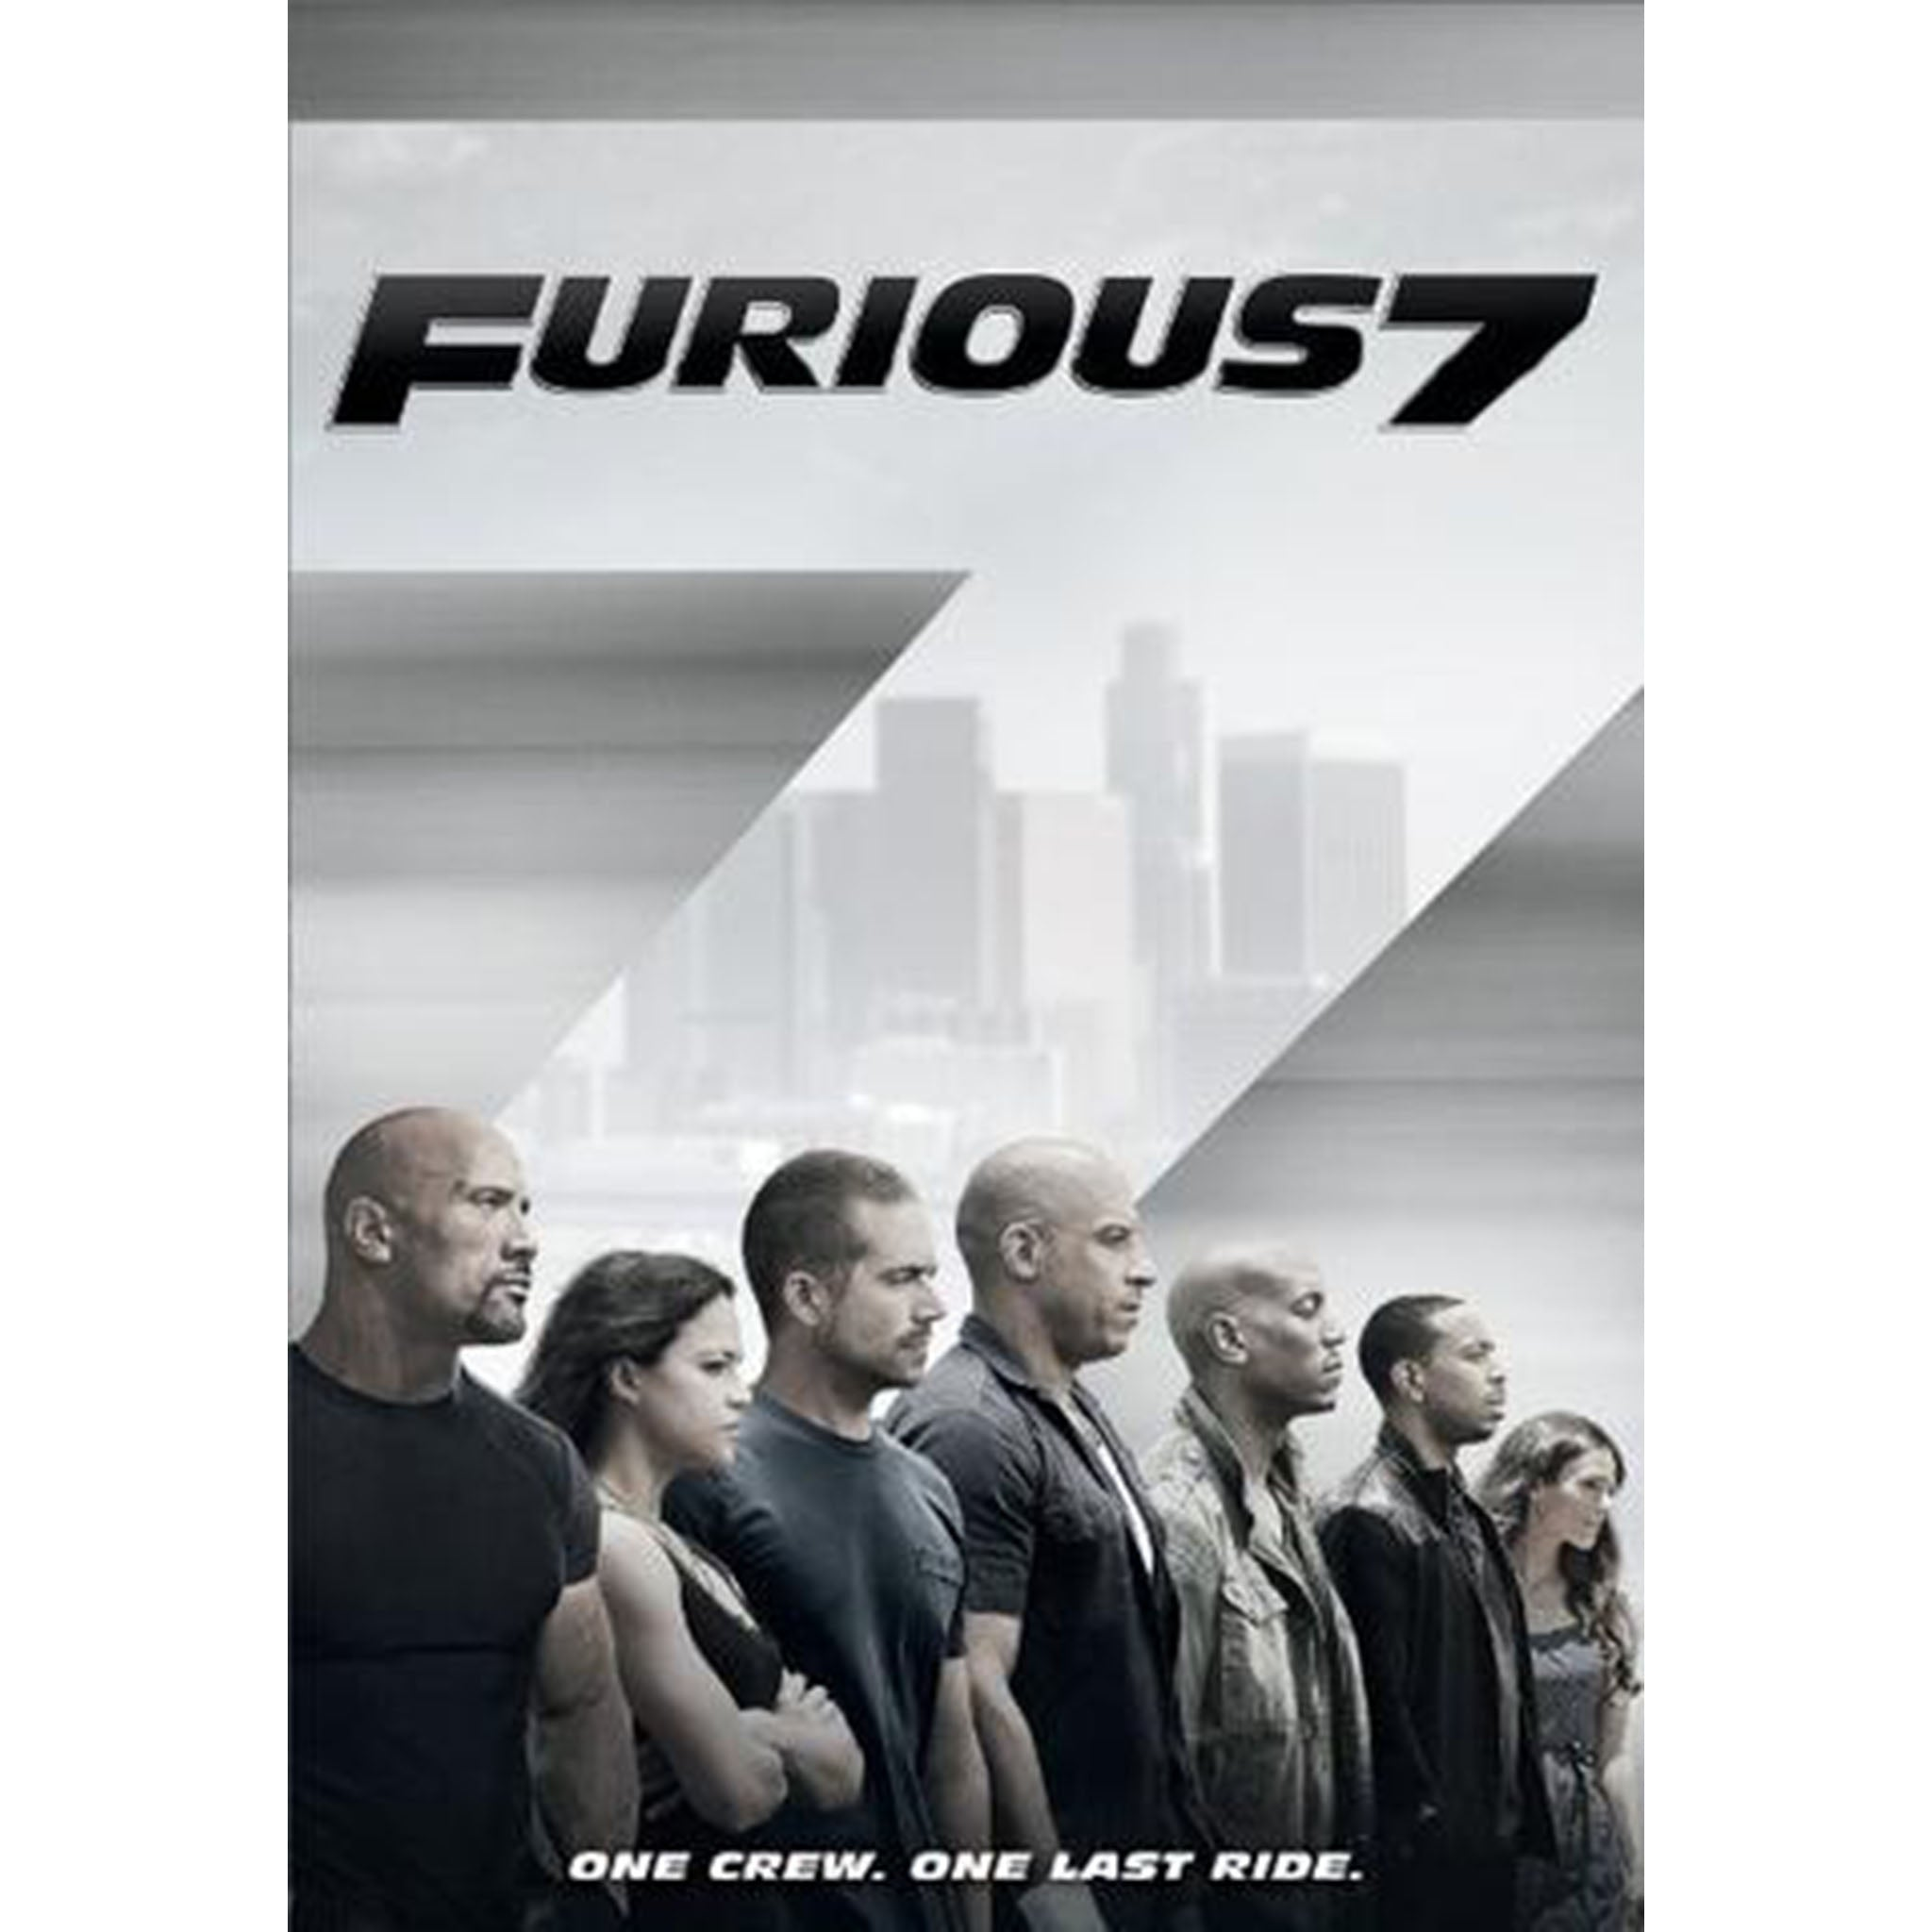 Furious 7 (DVD) - DVDsHQ